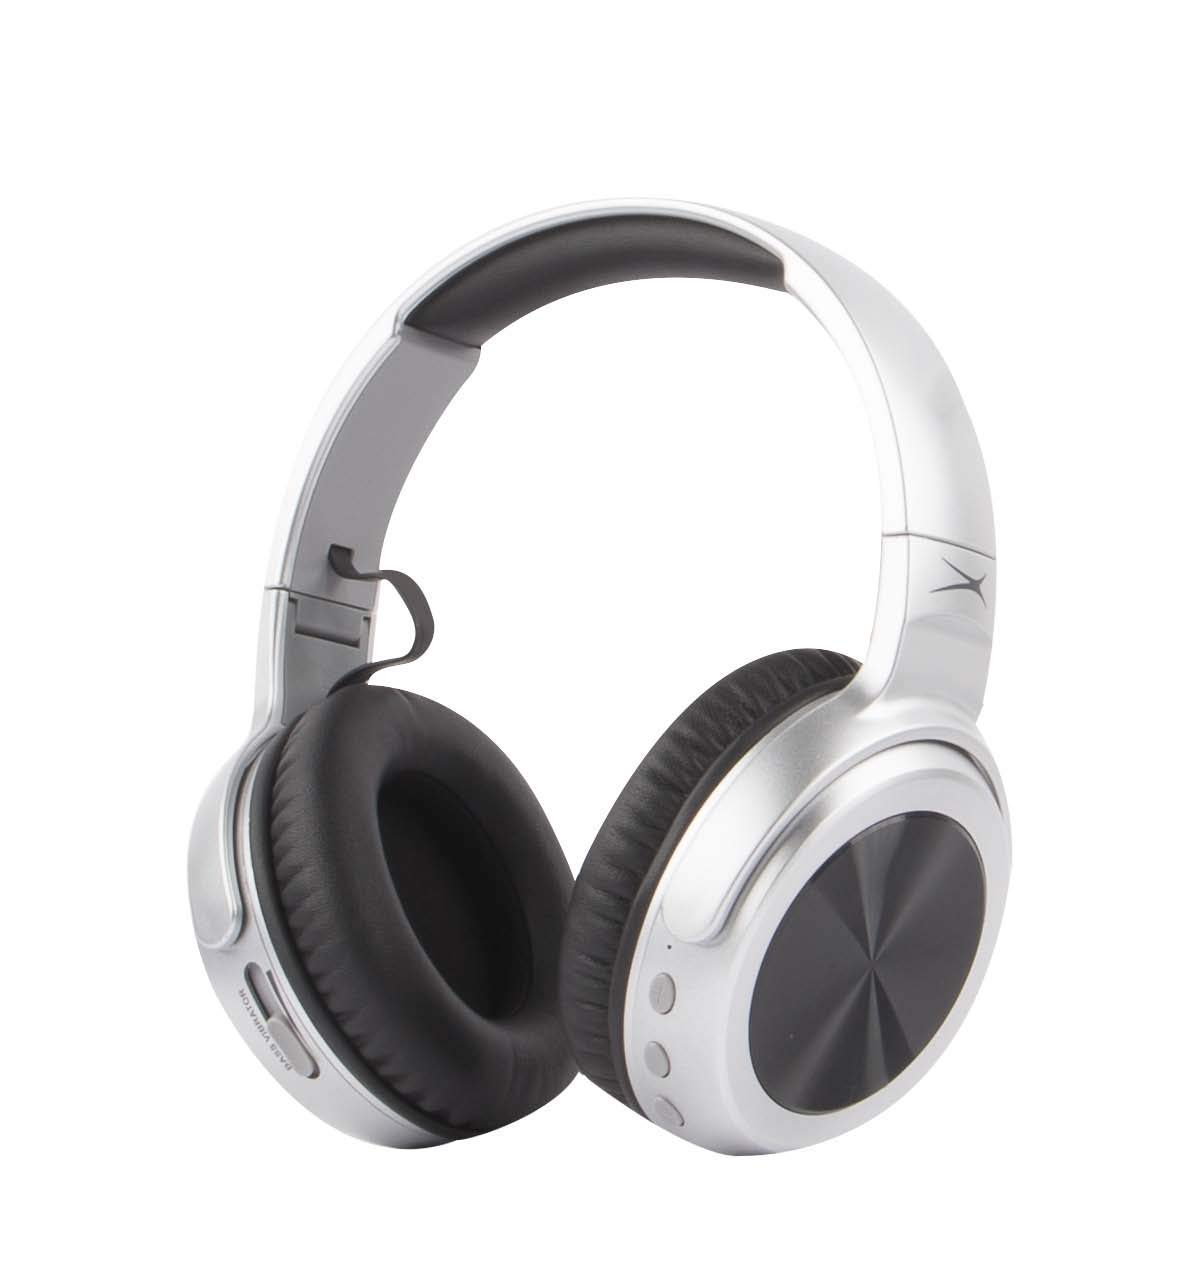 ef87b992602 Altec Lansing MZX701 Rumble Bass Boosted Over Ear Bluetooth Headphones with  Omnidirectional Vibration, 10 Hour